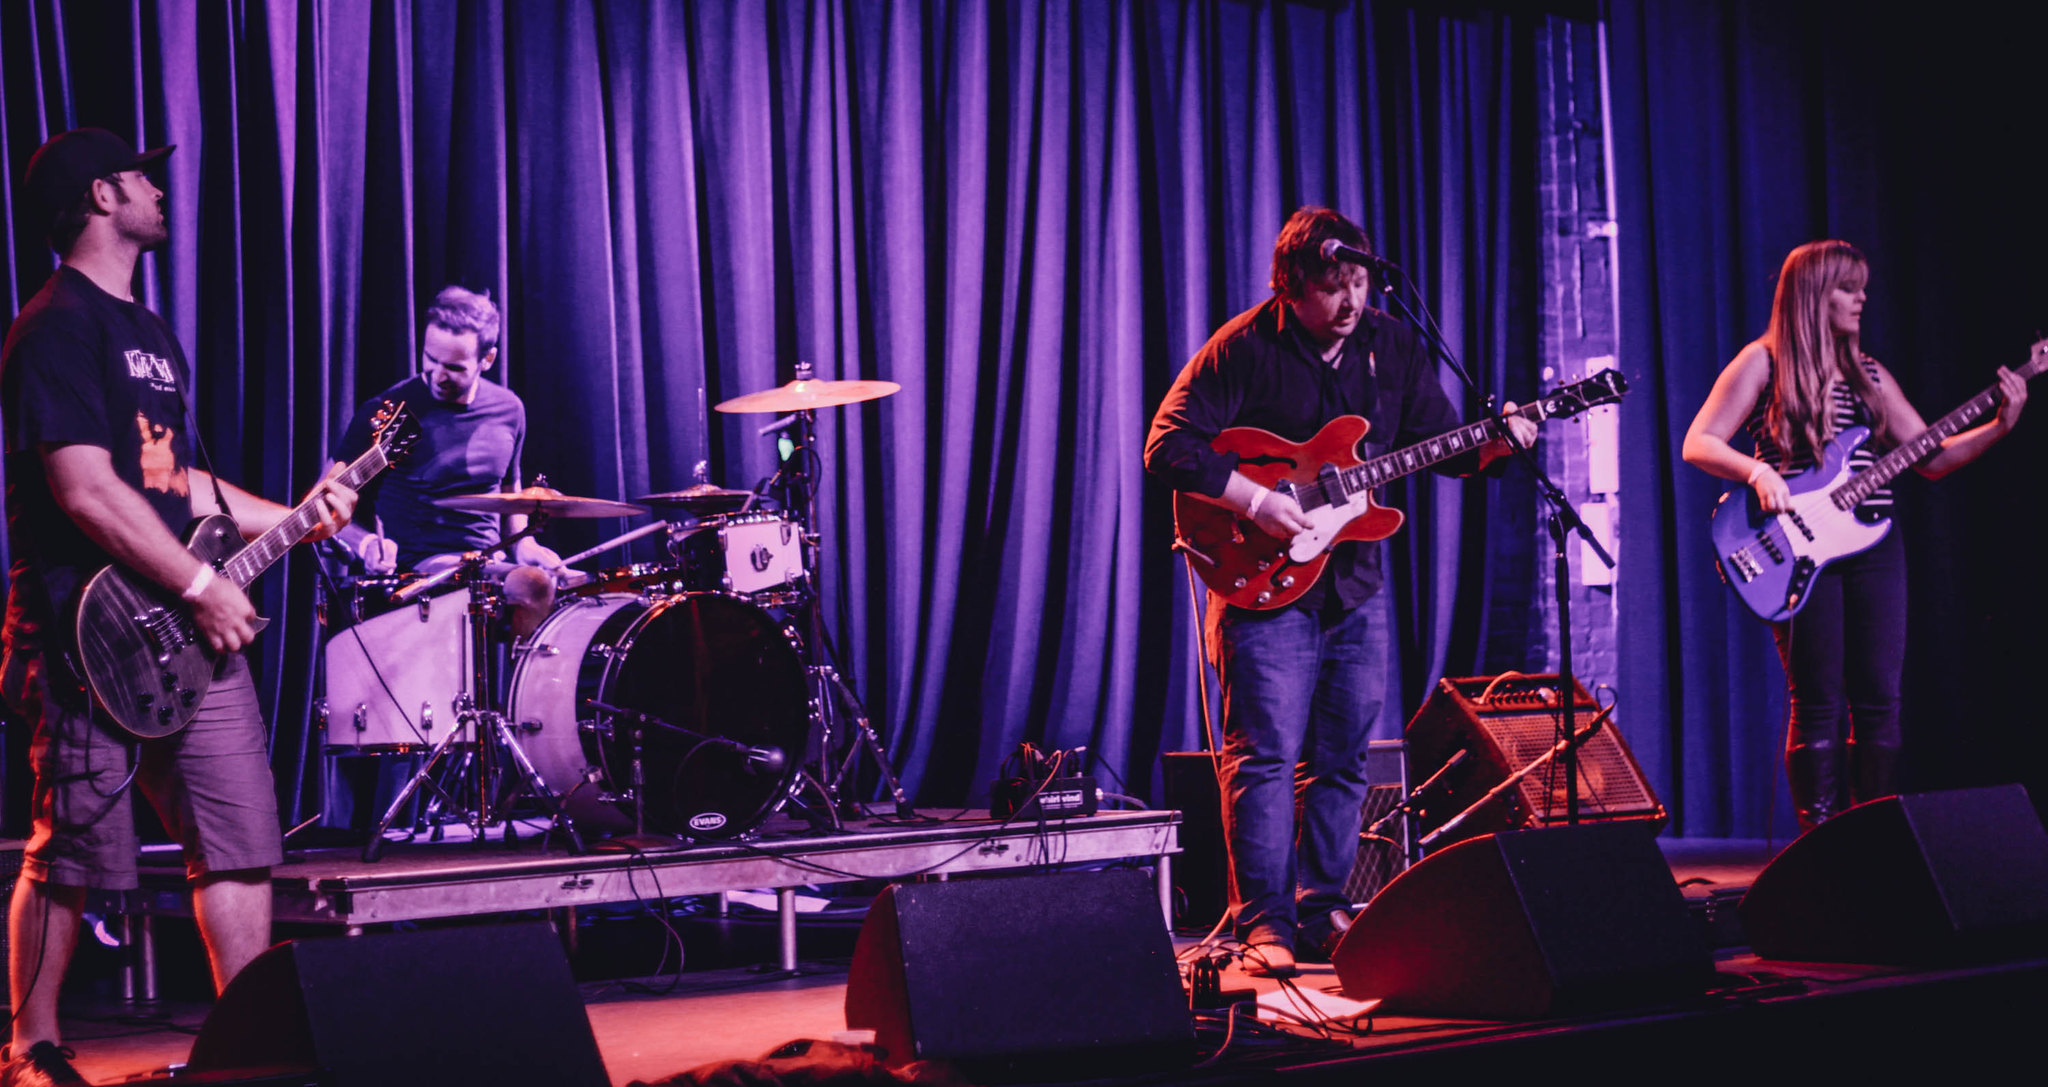 Pyrate @ The waiting Room | 9.4.15 | Benson Femme Fest